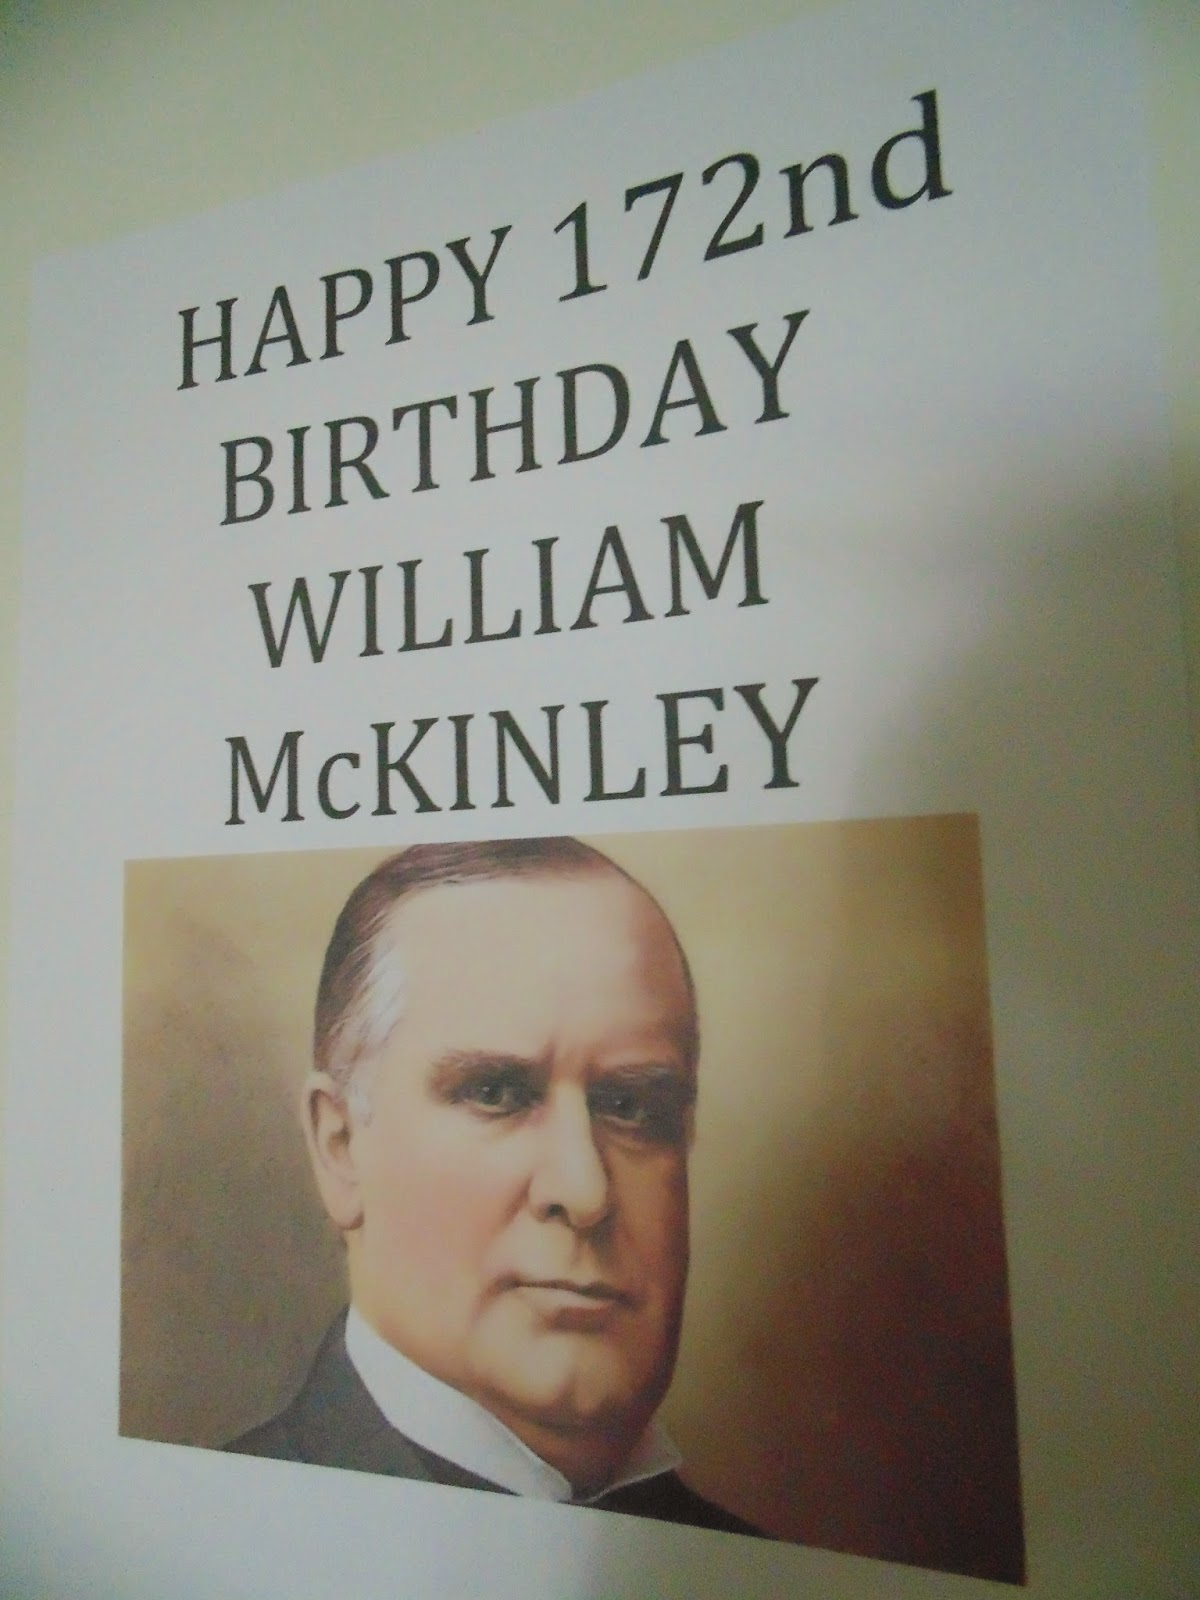 The Waterstraut Waterspout Happy 172nd Birthday William